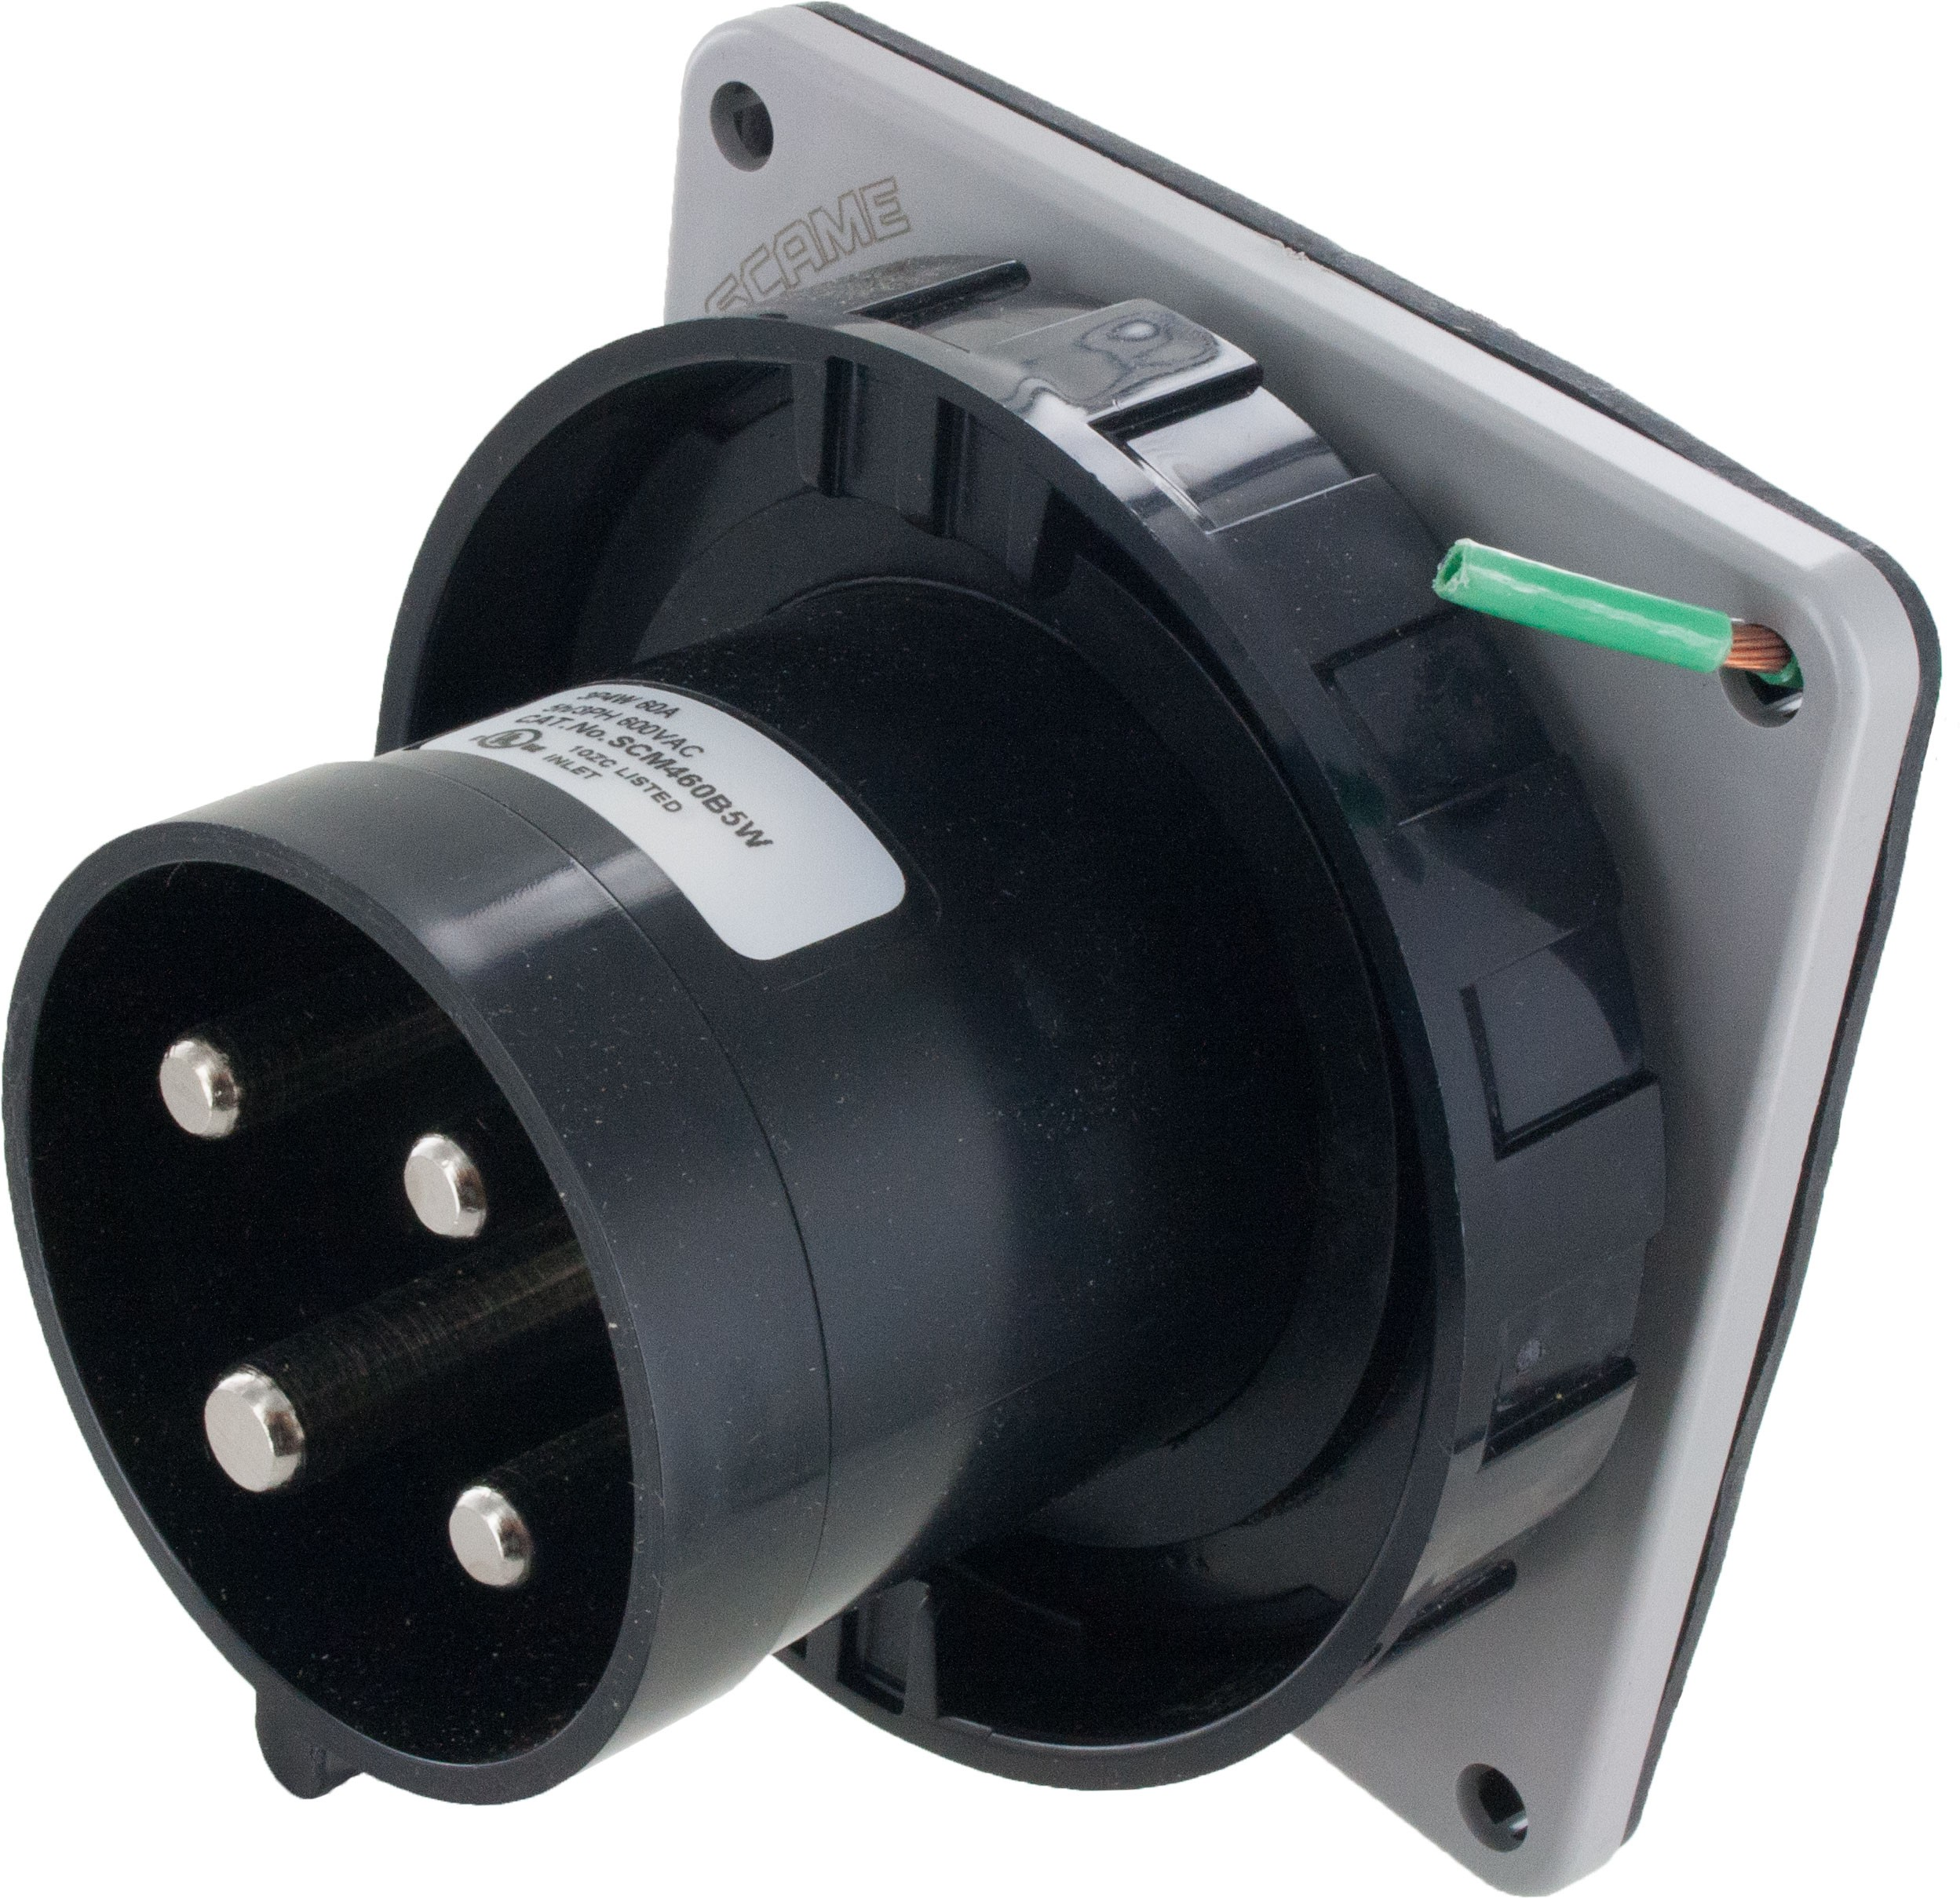 460B5W Pin And Sleeve Inlet 60 Amp 3 Pole 4 Wire